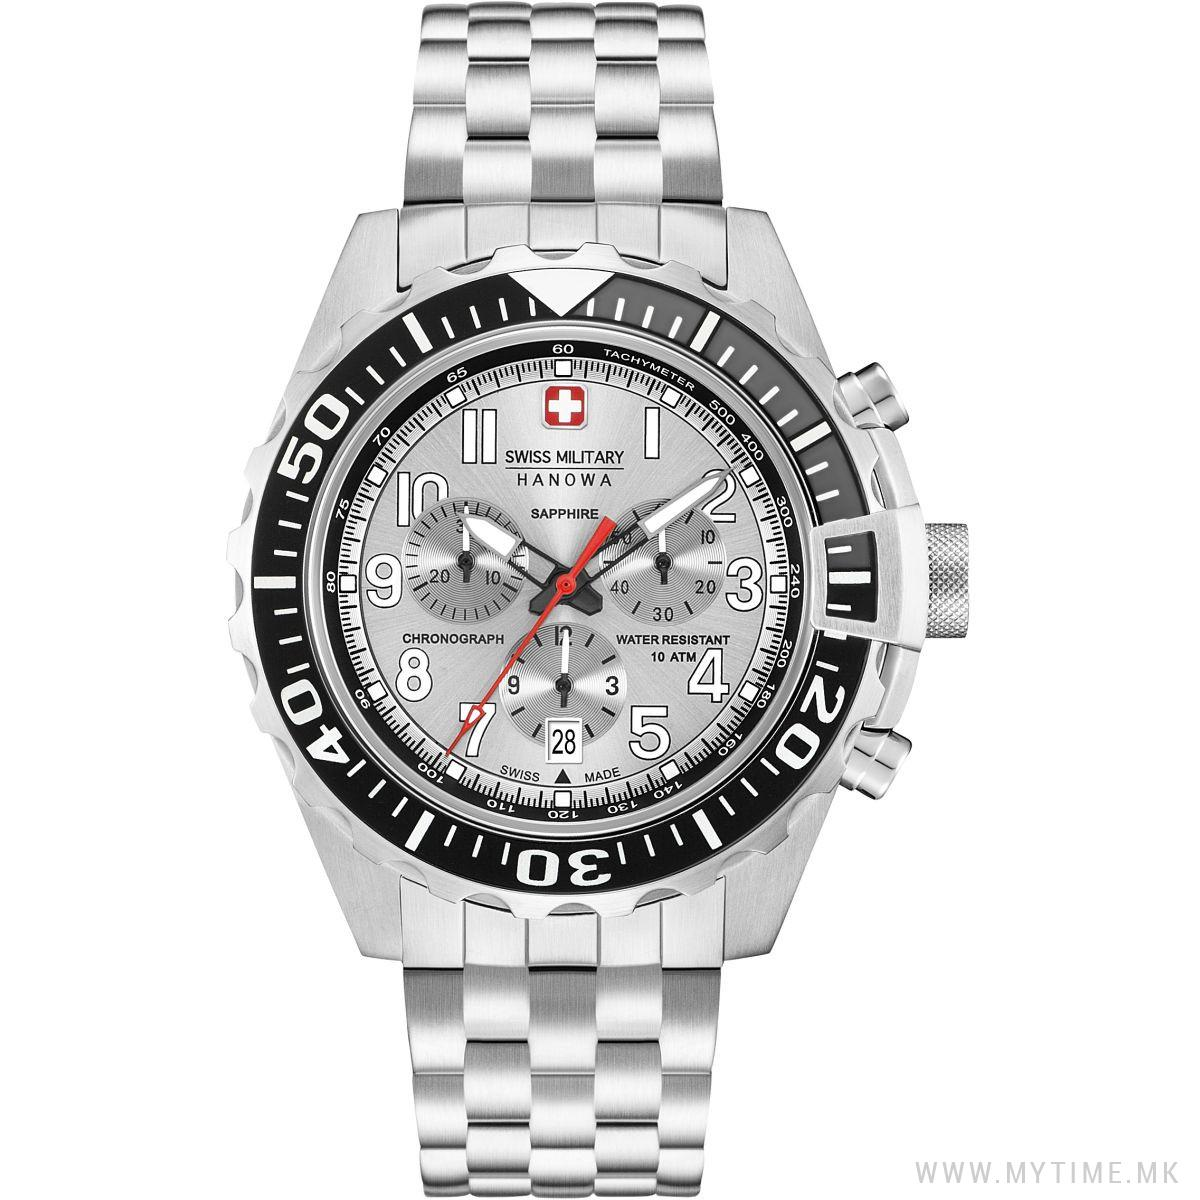 06-5304.04.001 TOUCHDOWN CHRONO